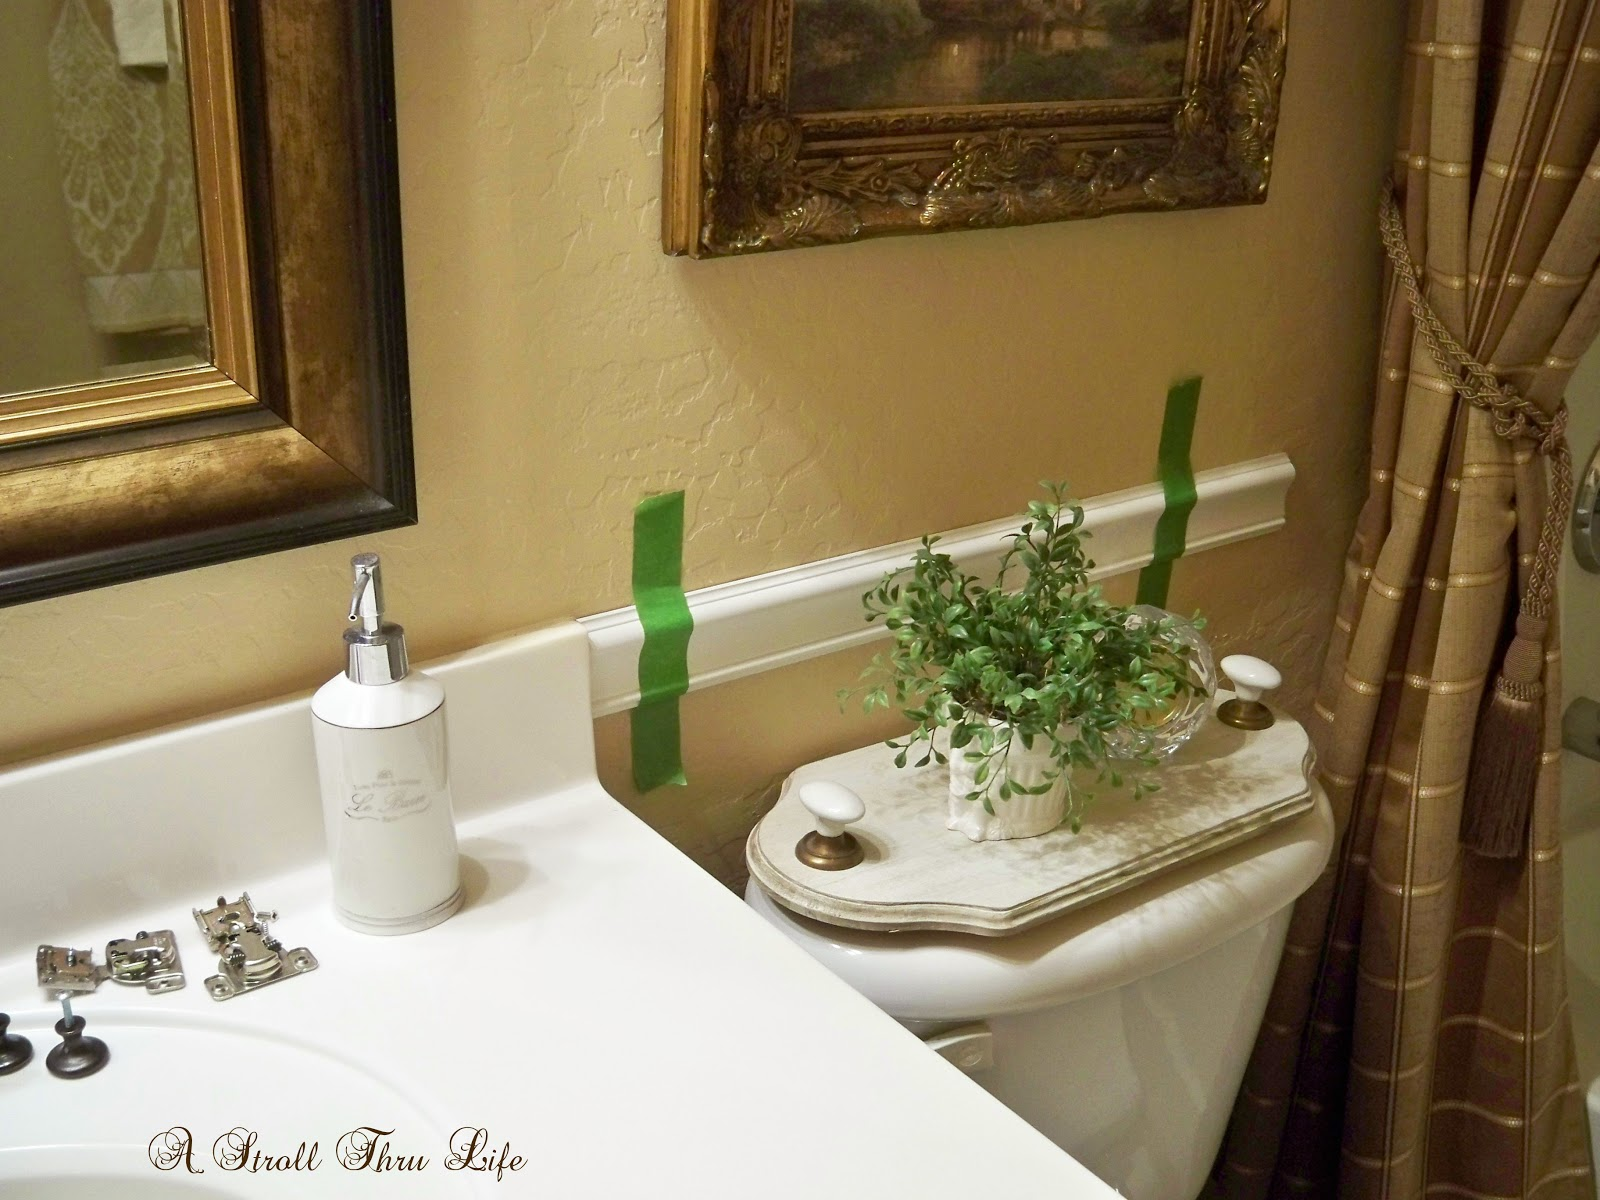 chair rail bathroom. A Stroll Thru Life: Hall Bathroom Makeover Update - Chair Rail \u0026 Moldings L